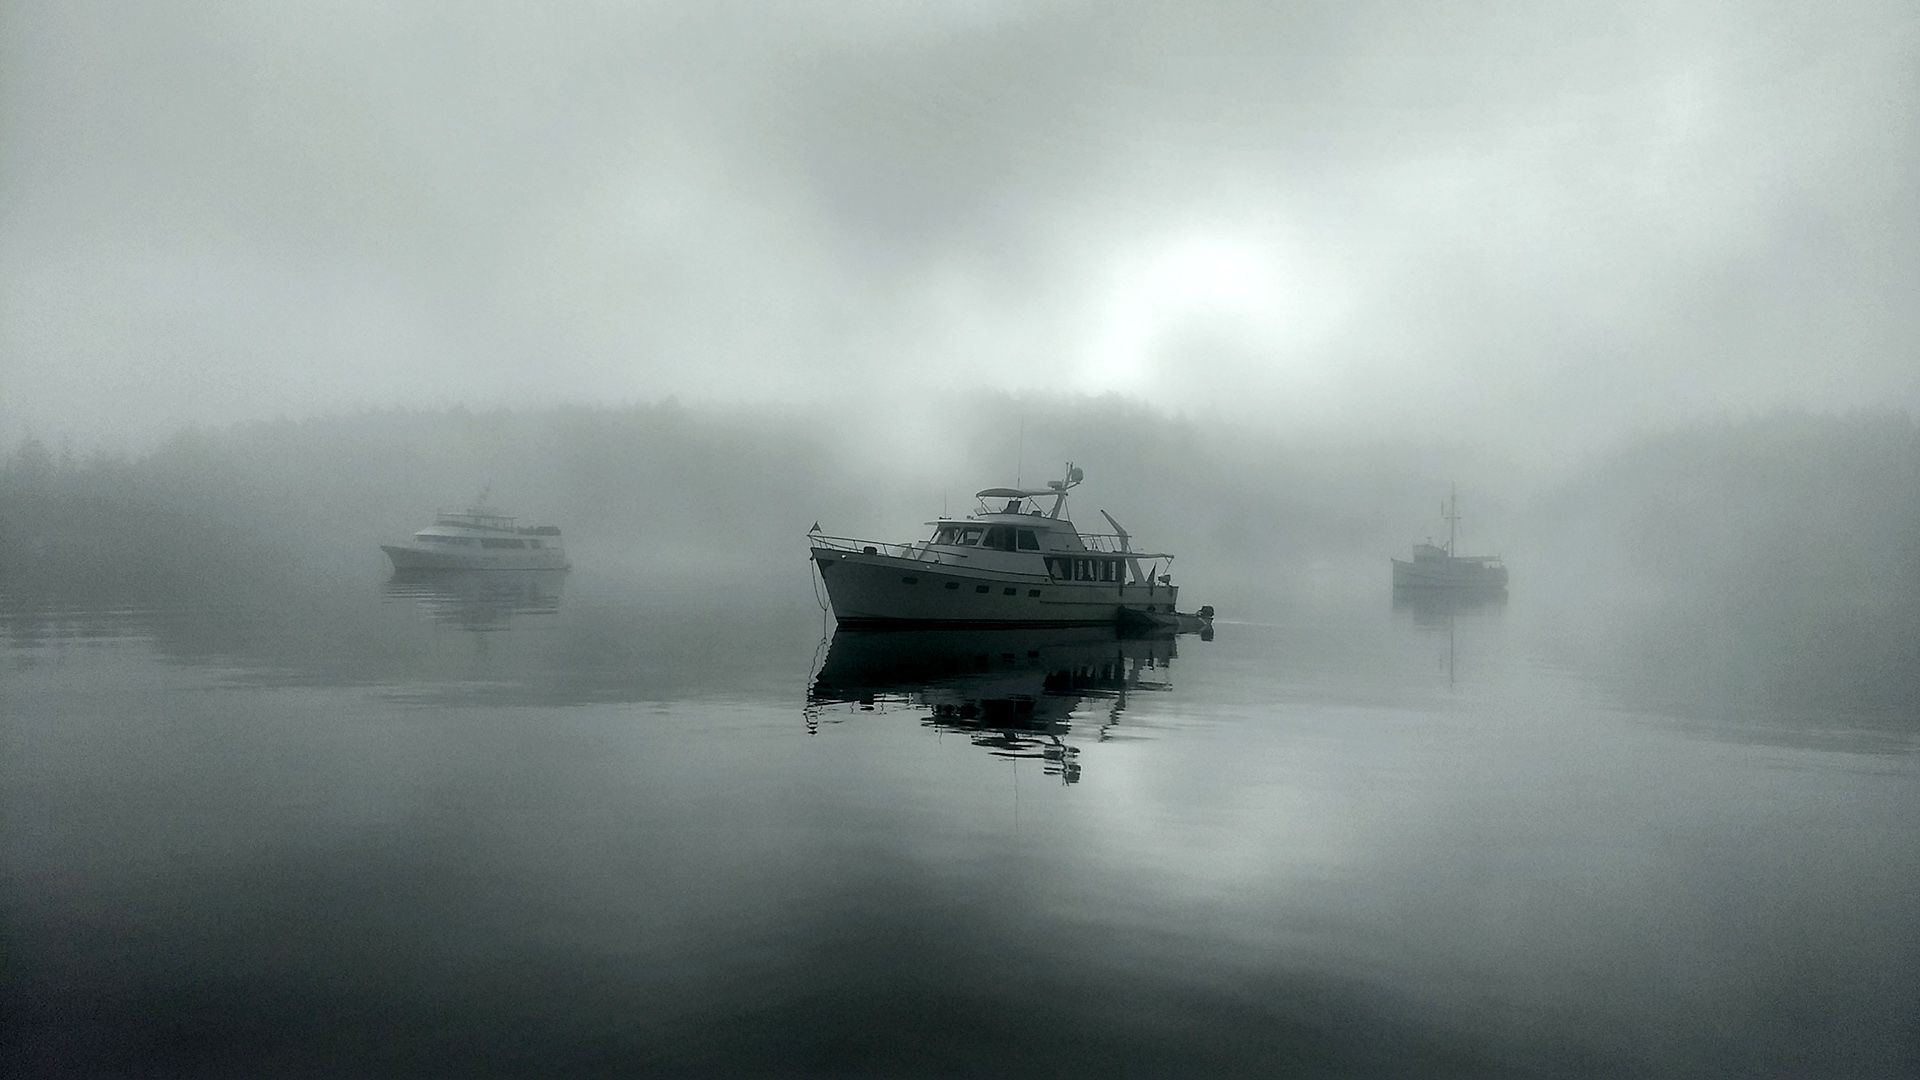 Three boats in brightly-lit dense fog. One is close enough to be crisply detailed.